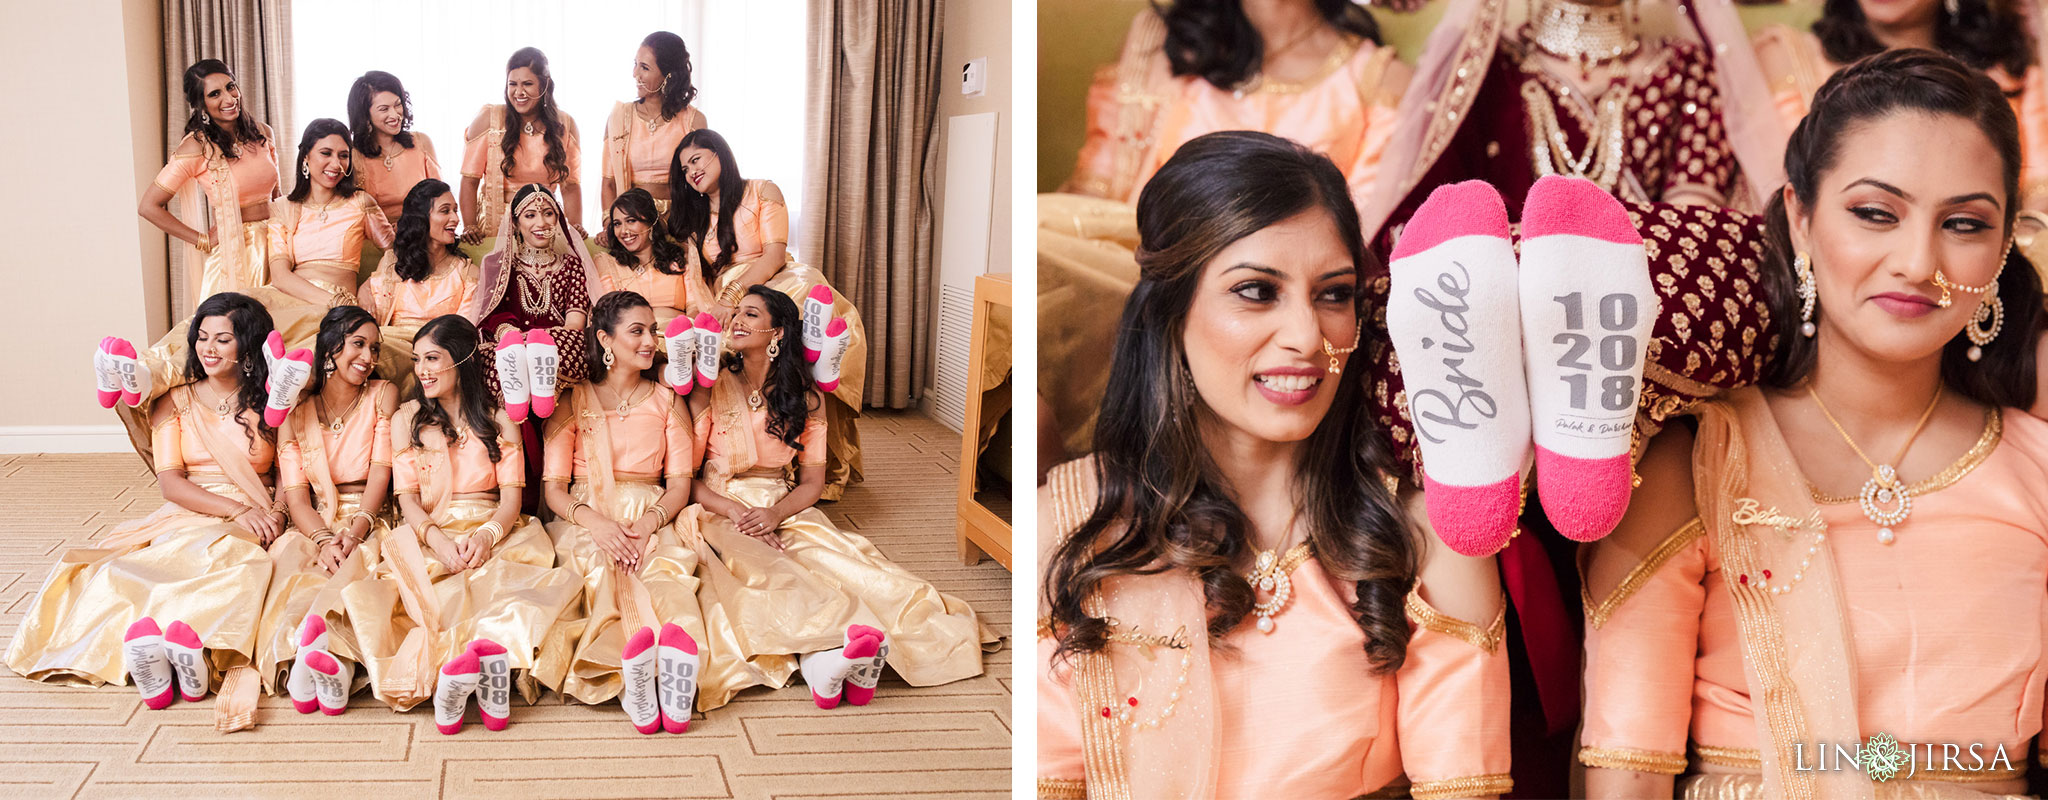 05 hotel irvine orange county indian wedding photograpy